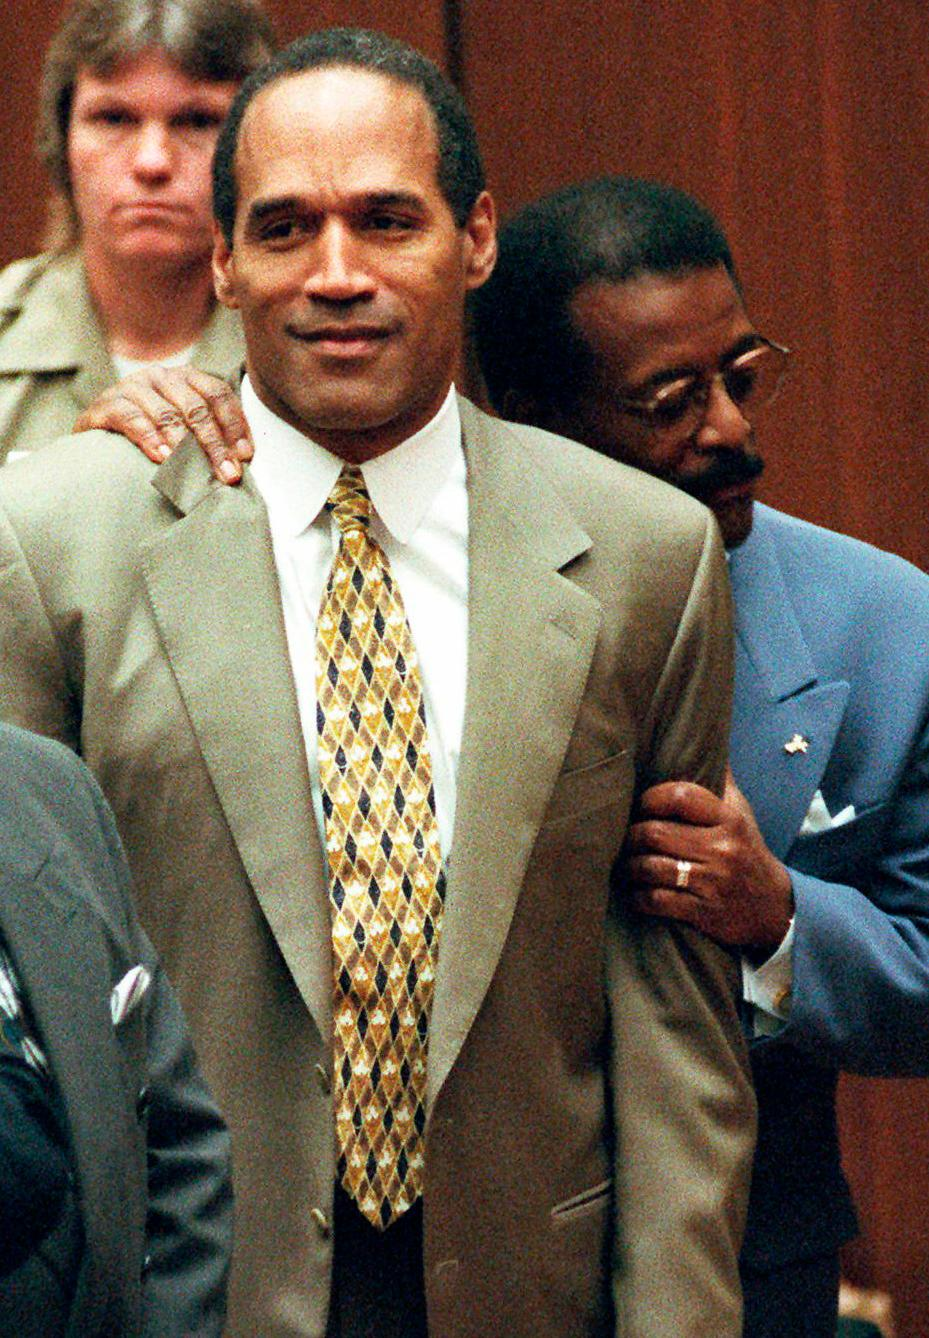 FILE - In this Oct. 3, 1995 file photo, attorney Johnnie Cochran Jr., right, holds onto O.J. Simpson as the not guilty verdict is read in a Los Angeles courtroom. Simpson, the former football star, TV pitchman and now Nevada prison inmate, will have a lot going for him when he appears before state parole board members Thursday, July 20, 2017, seeking his release after more than eight years for an ill-fated bid to retrieve sports memorabilia. (AP Photo/Pool, Myung J. Chun, file)